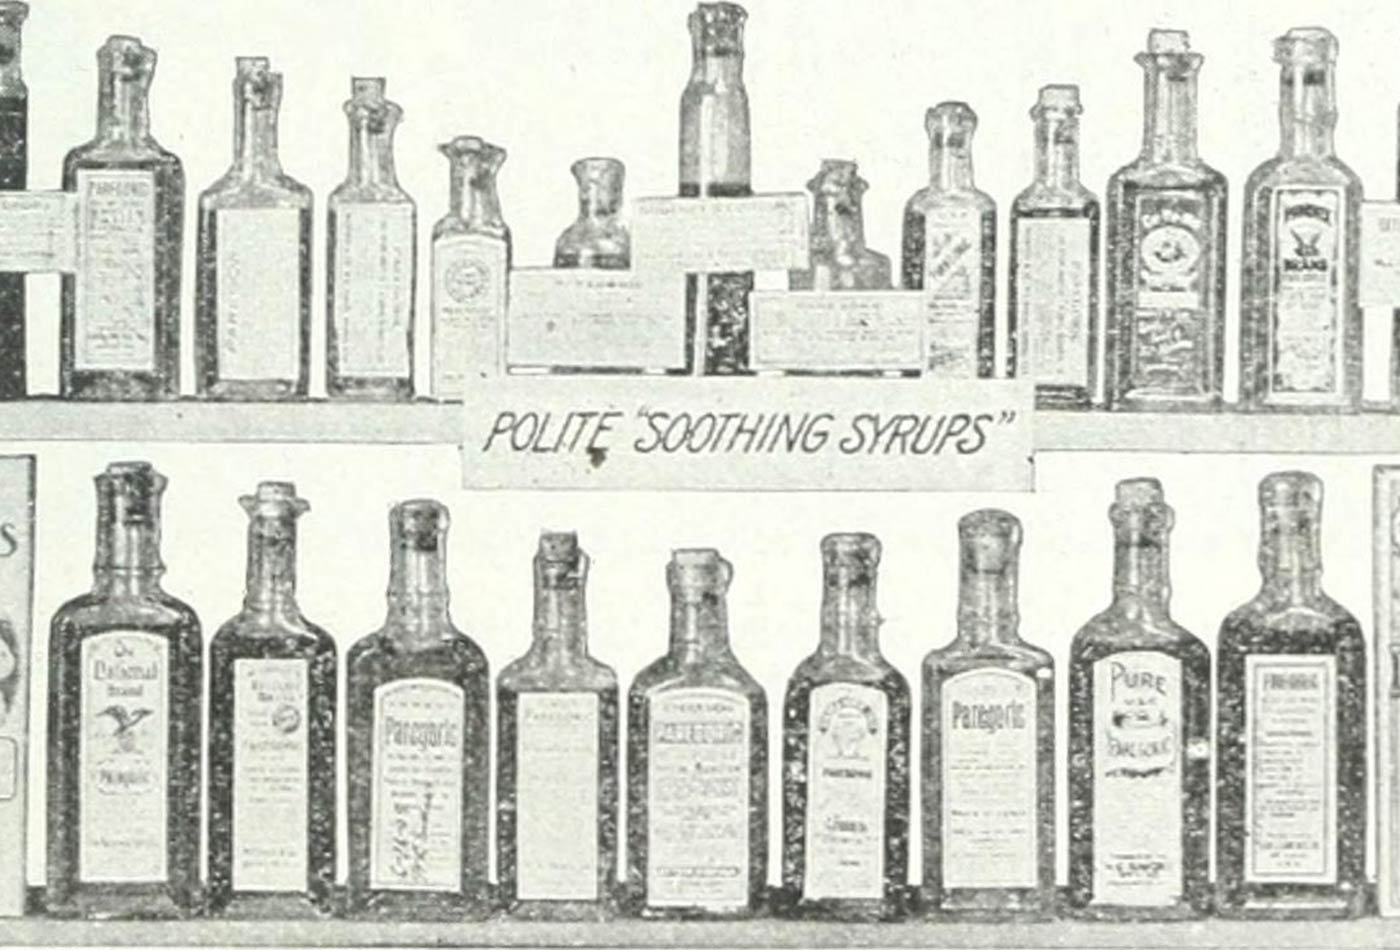 """Image from """"Nostrums and quackery,"""" from """"The Journal of the American Medical Association,"""" 1914"""